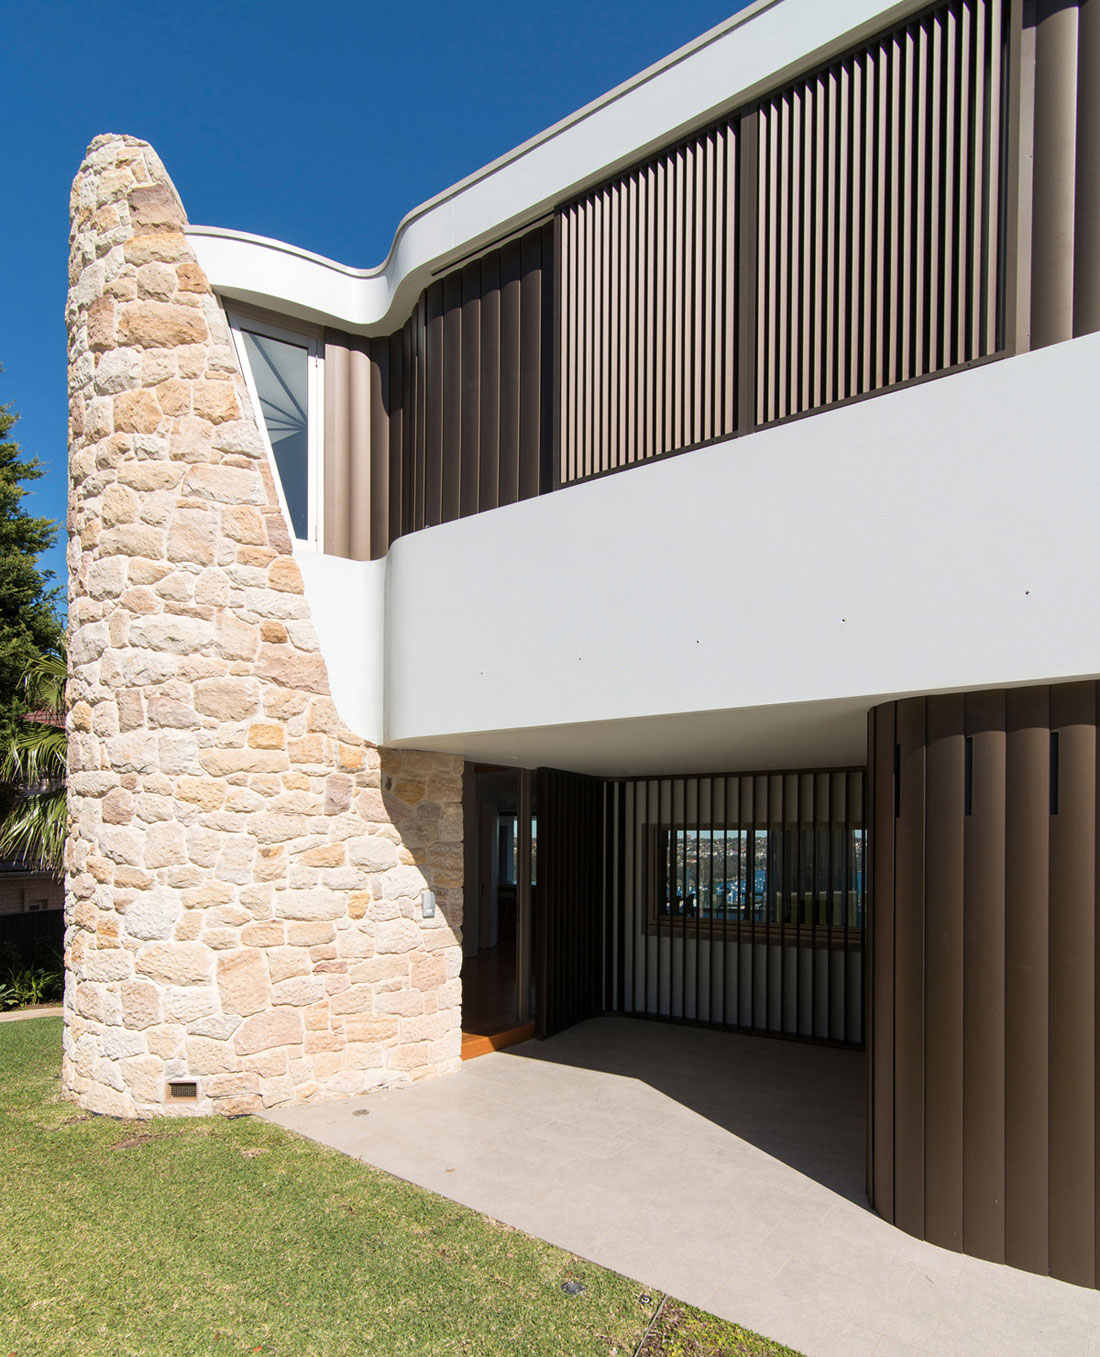 Martello Tower Home by Luigi Rosselli Architects (2)